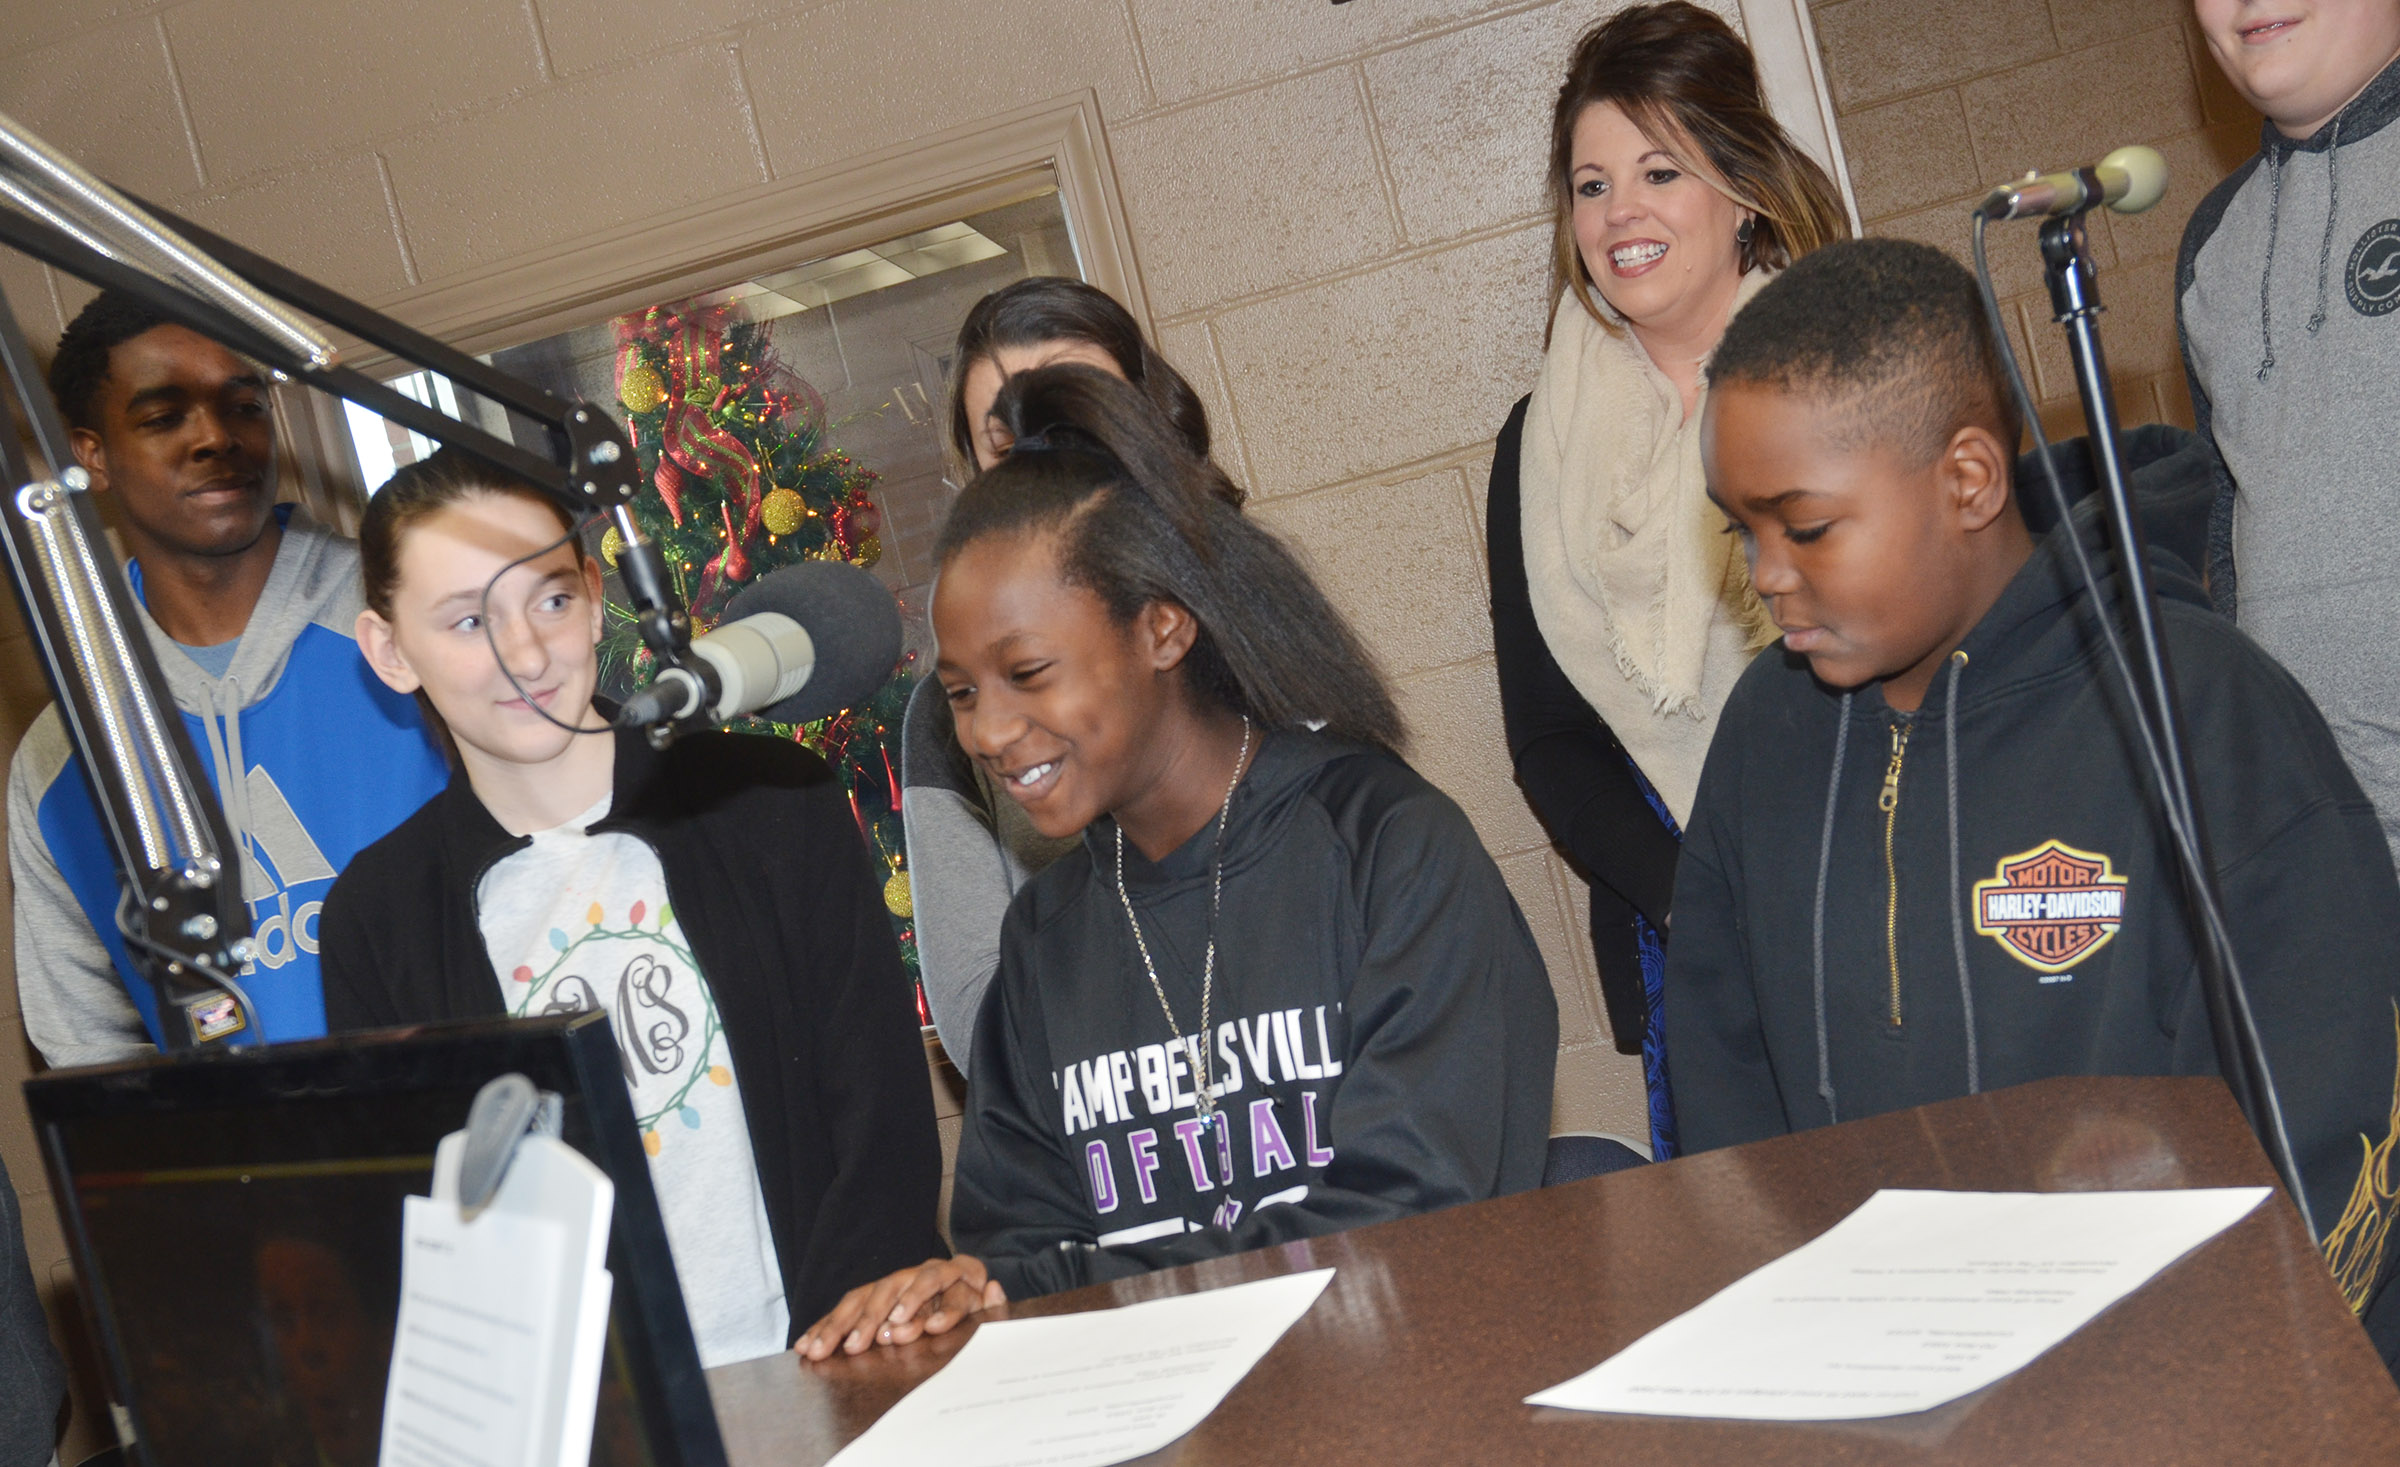 CMS eighth-grader Myricle Gholston, middle, introduces herself on the air.